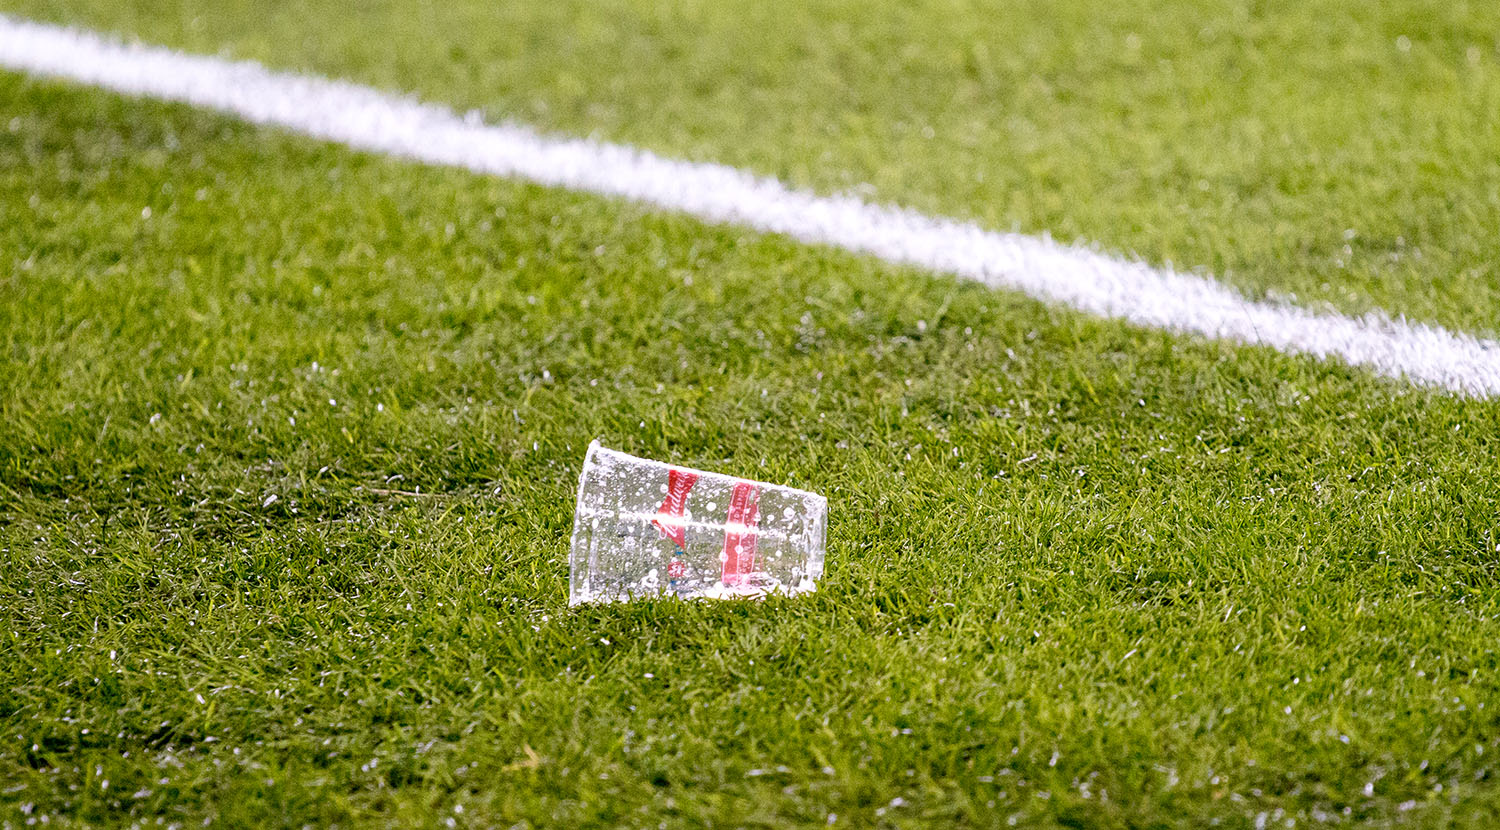 A beer thrown onto the pitch at BMO Field during the Major League Soccer Cup Final.Image by Dennis Marciniak of denMAR Media.